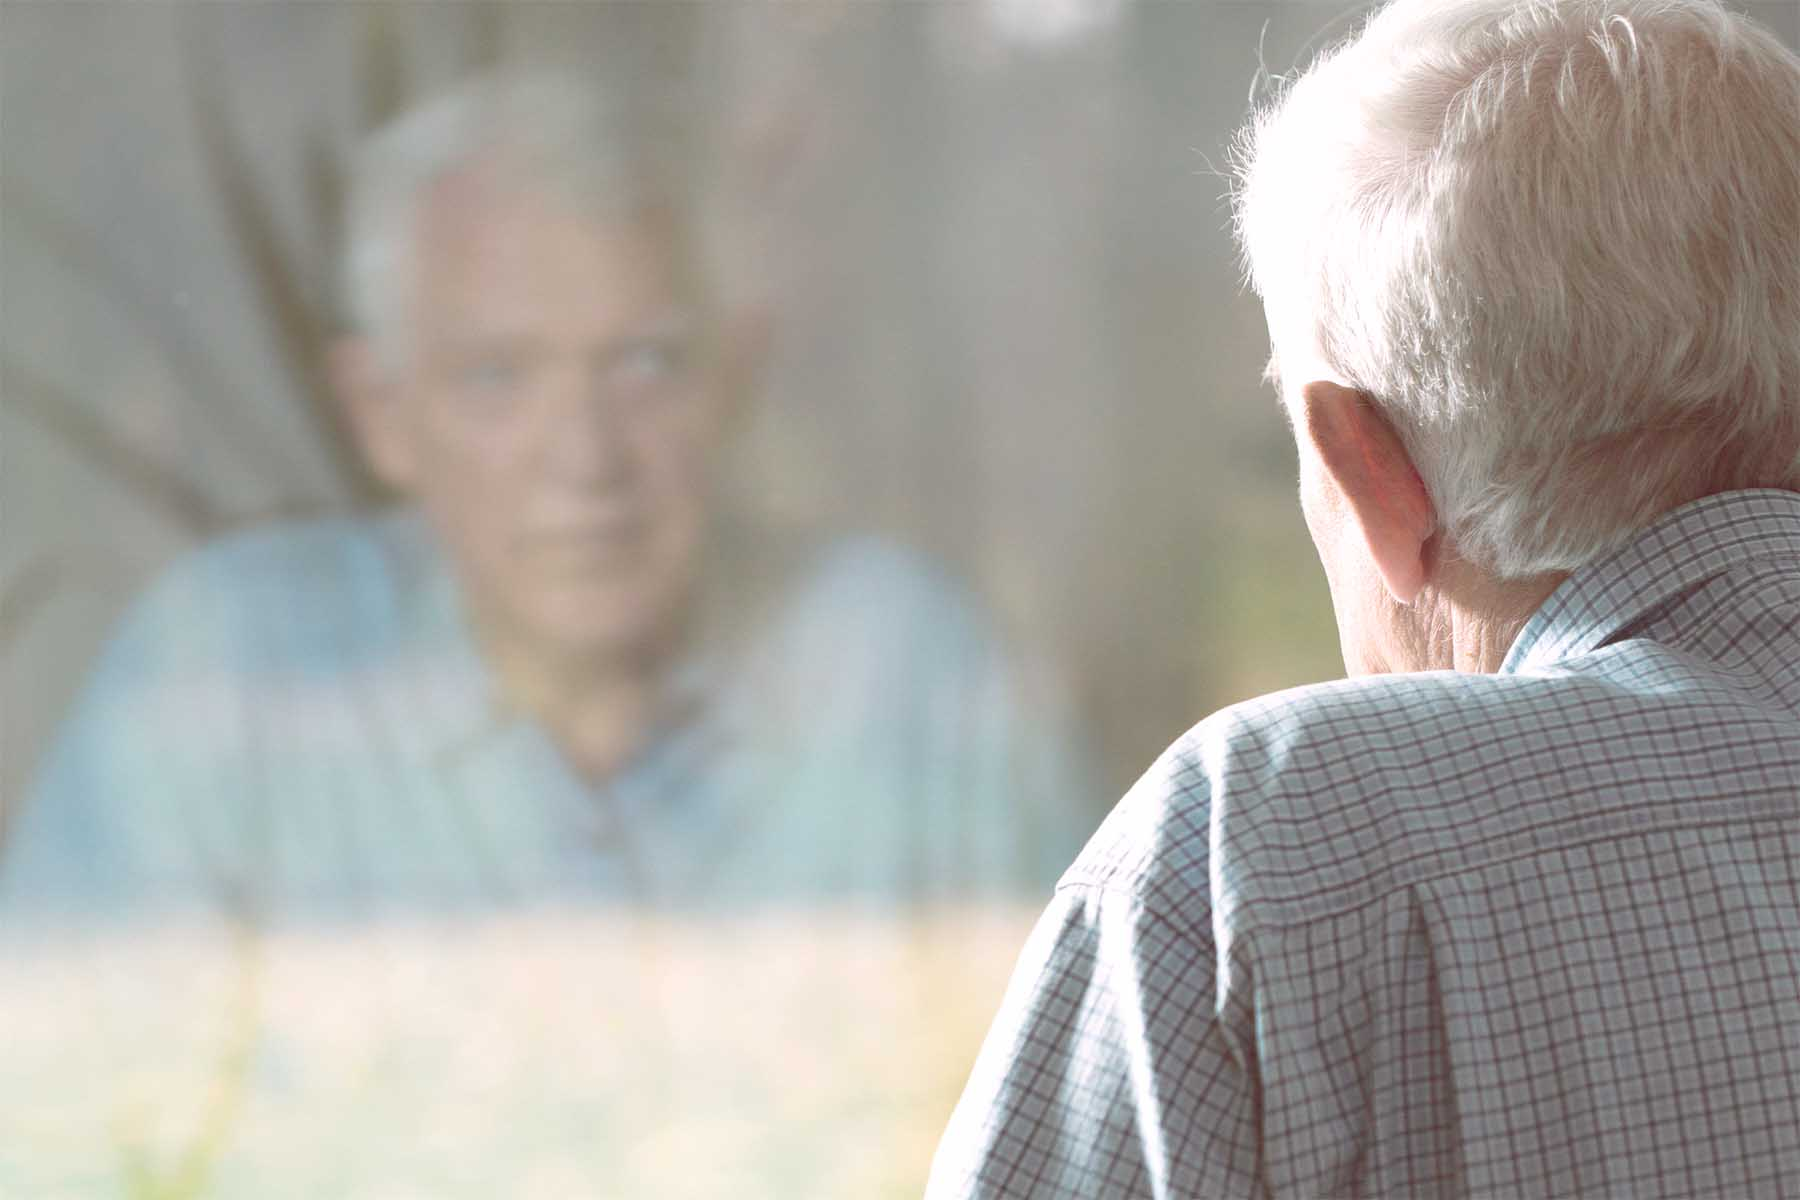 A photo of scared-looking senior man, looking at his reflection in a window.